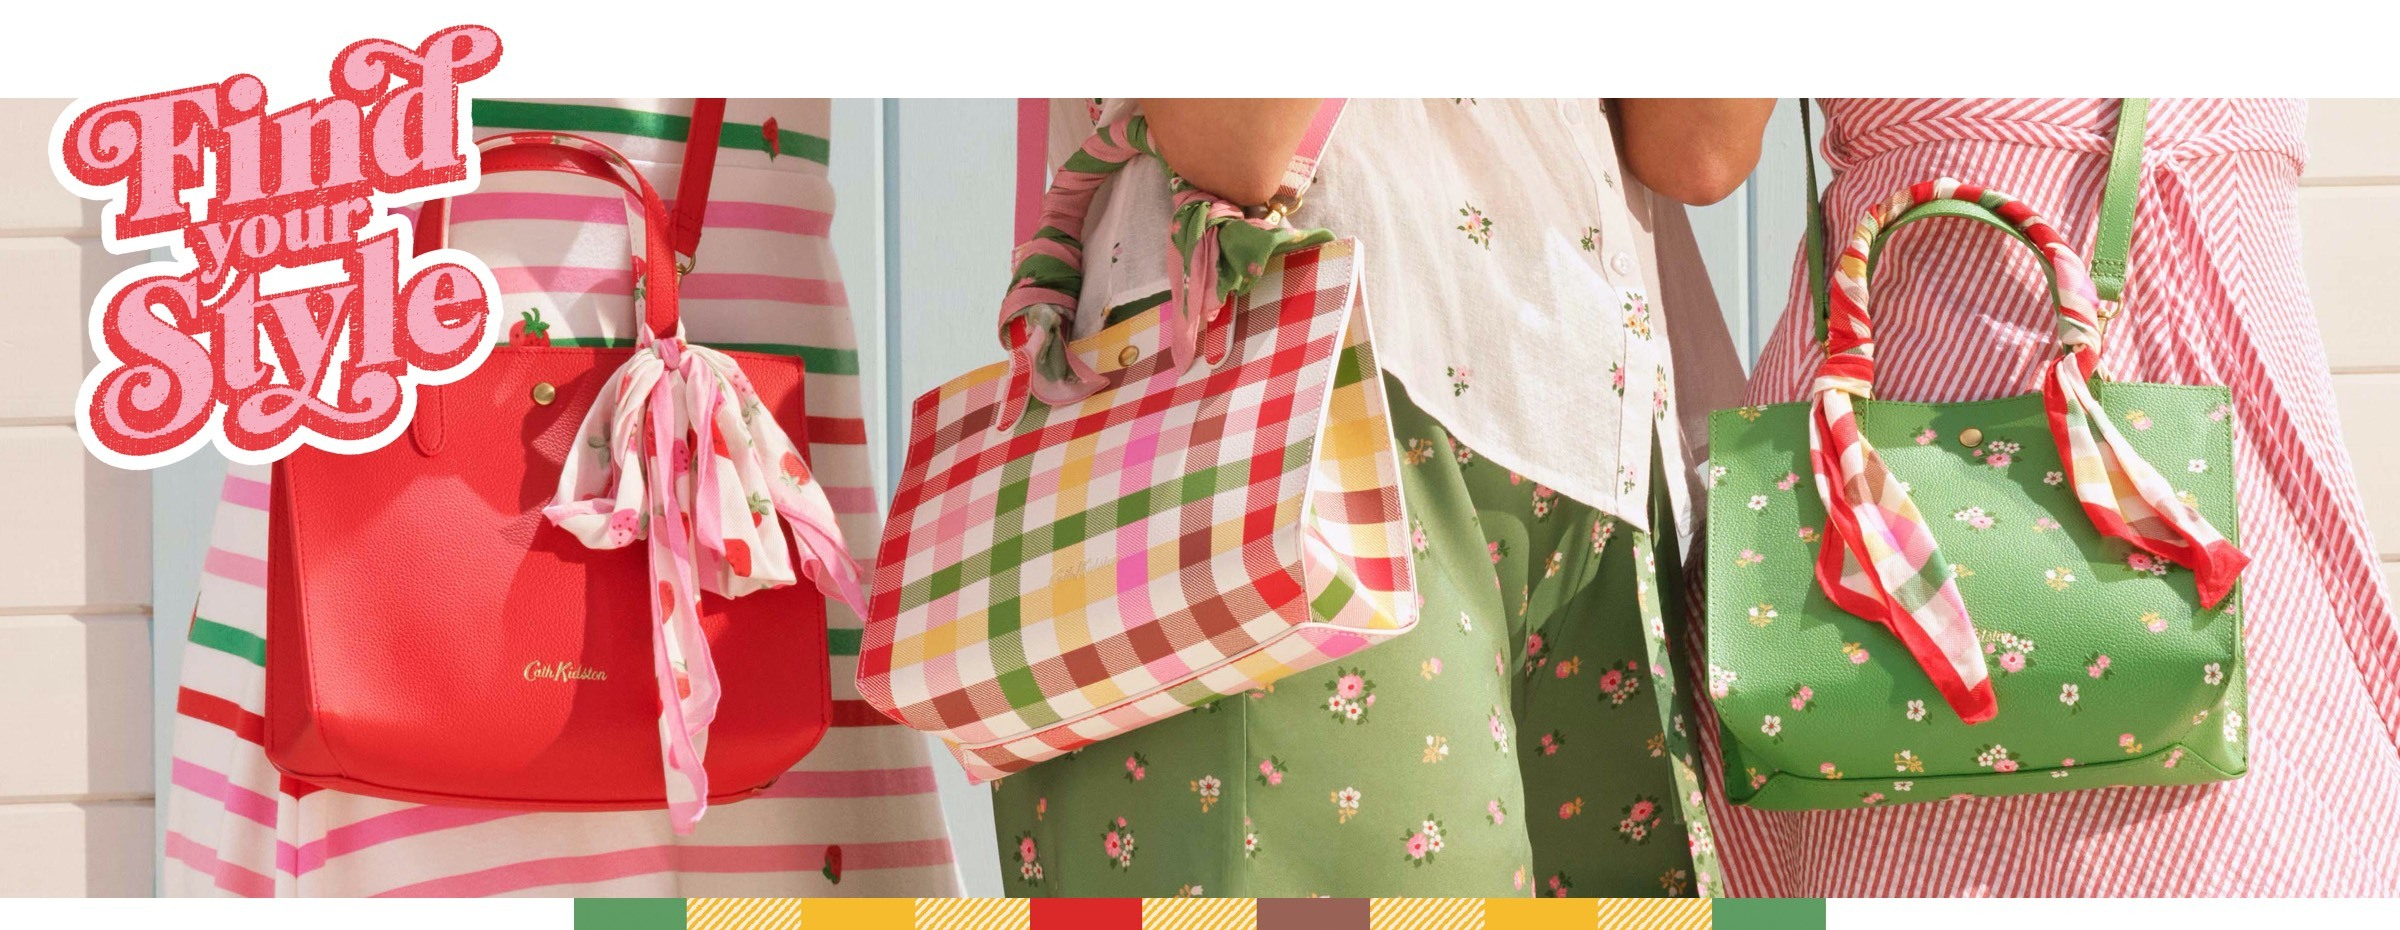 Find your Style - Cath Kidston